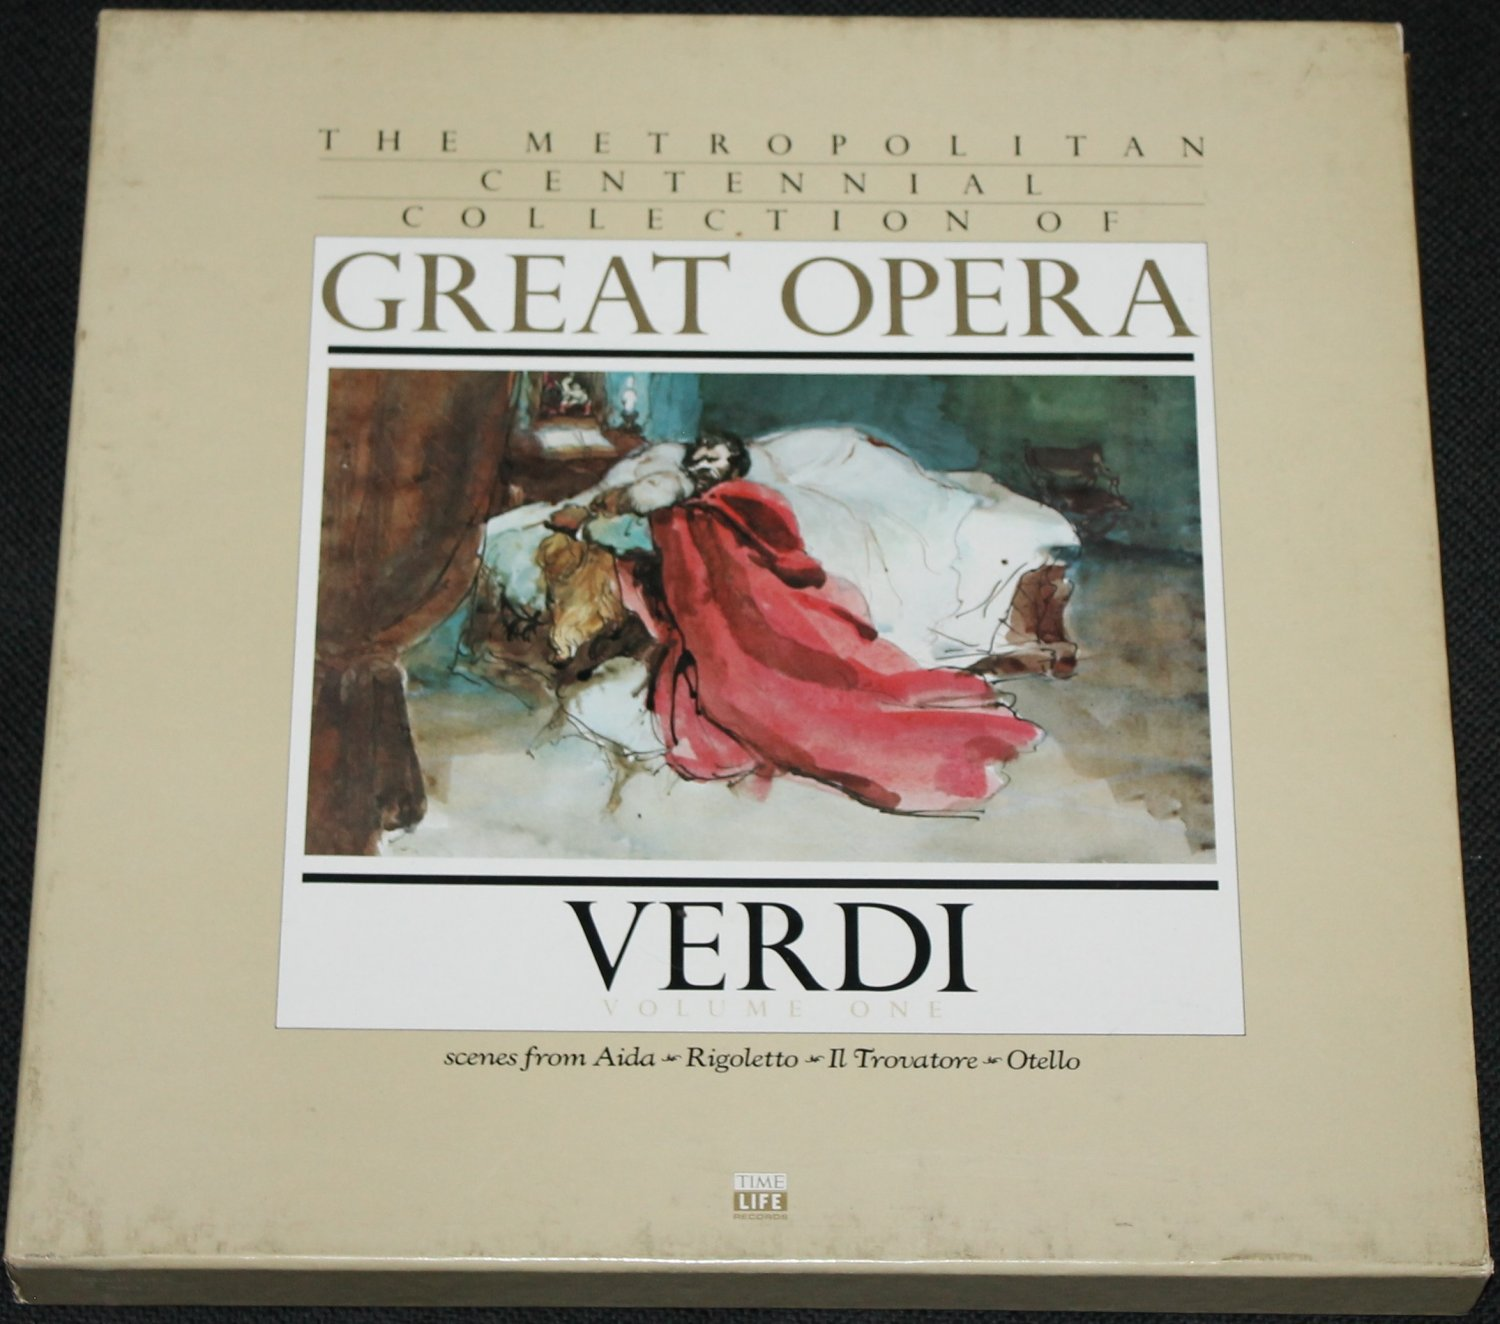 Time LIfe Great Opera - Verdi Record Set